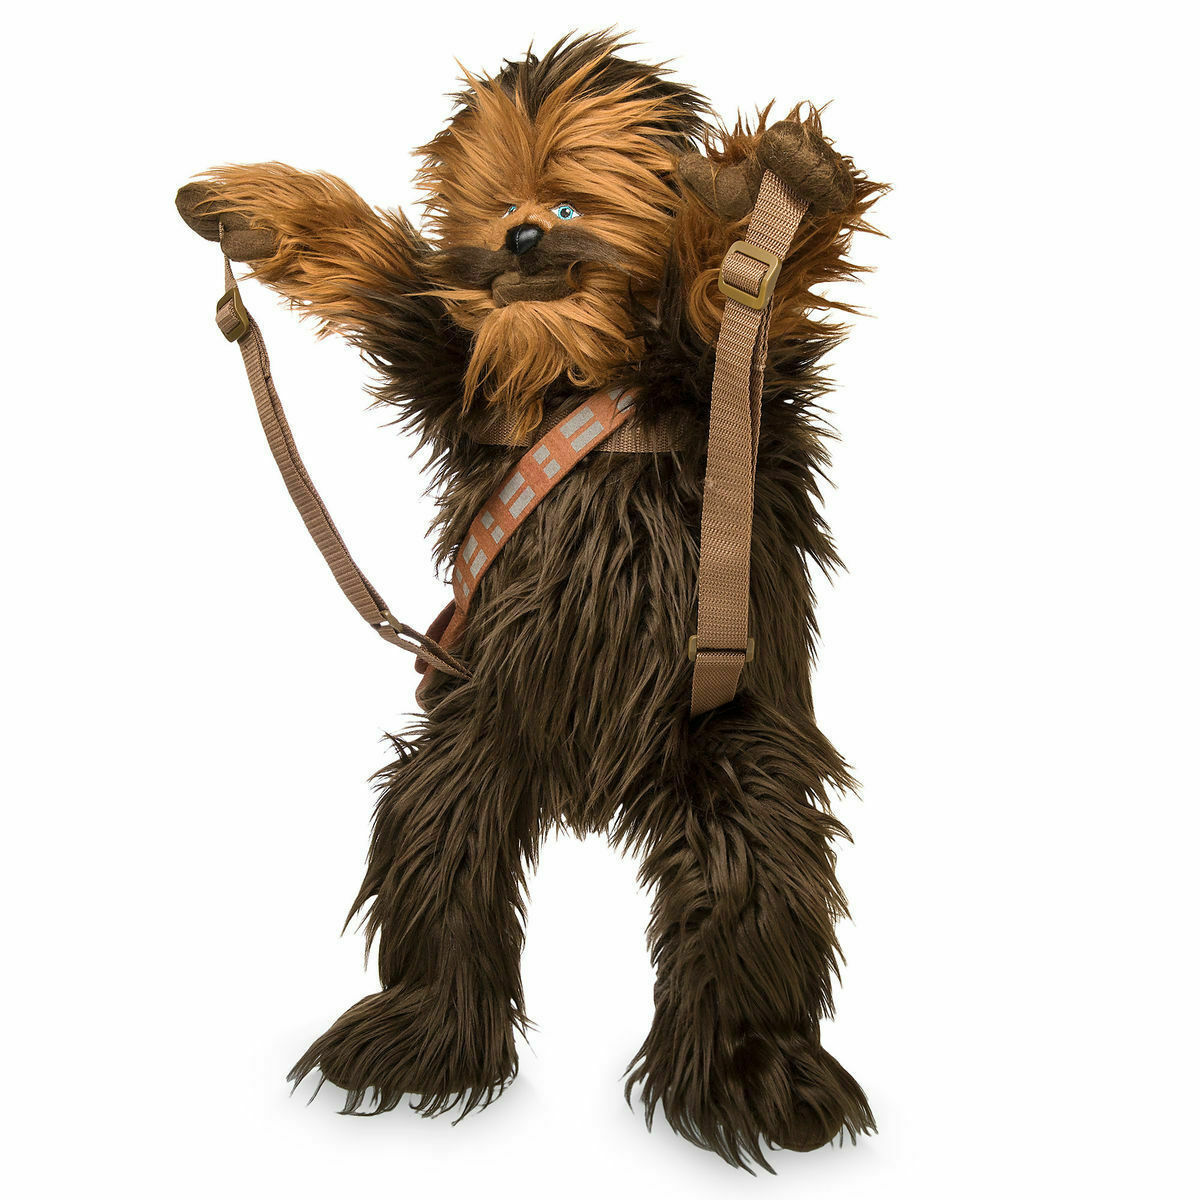 Disney Parks Star Wars Chewbacca Backpack New With Tags image 3